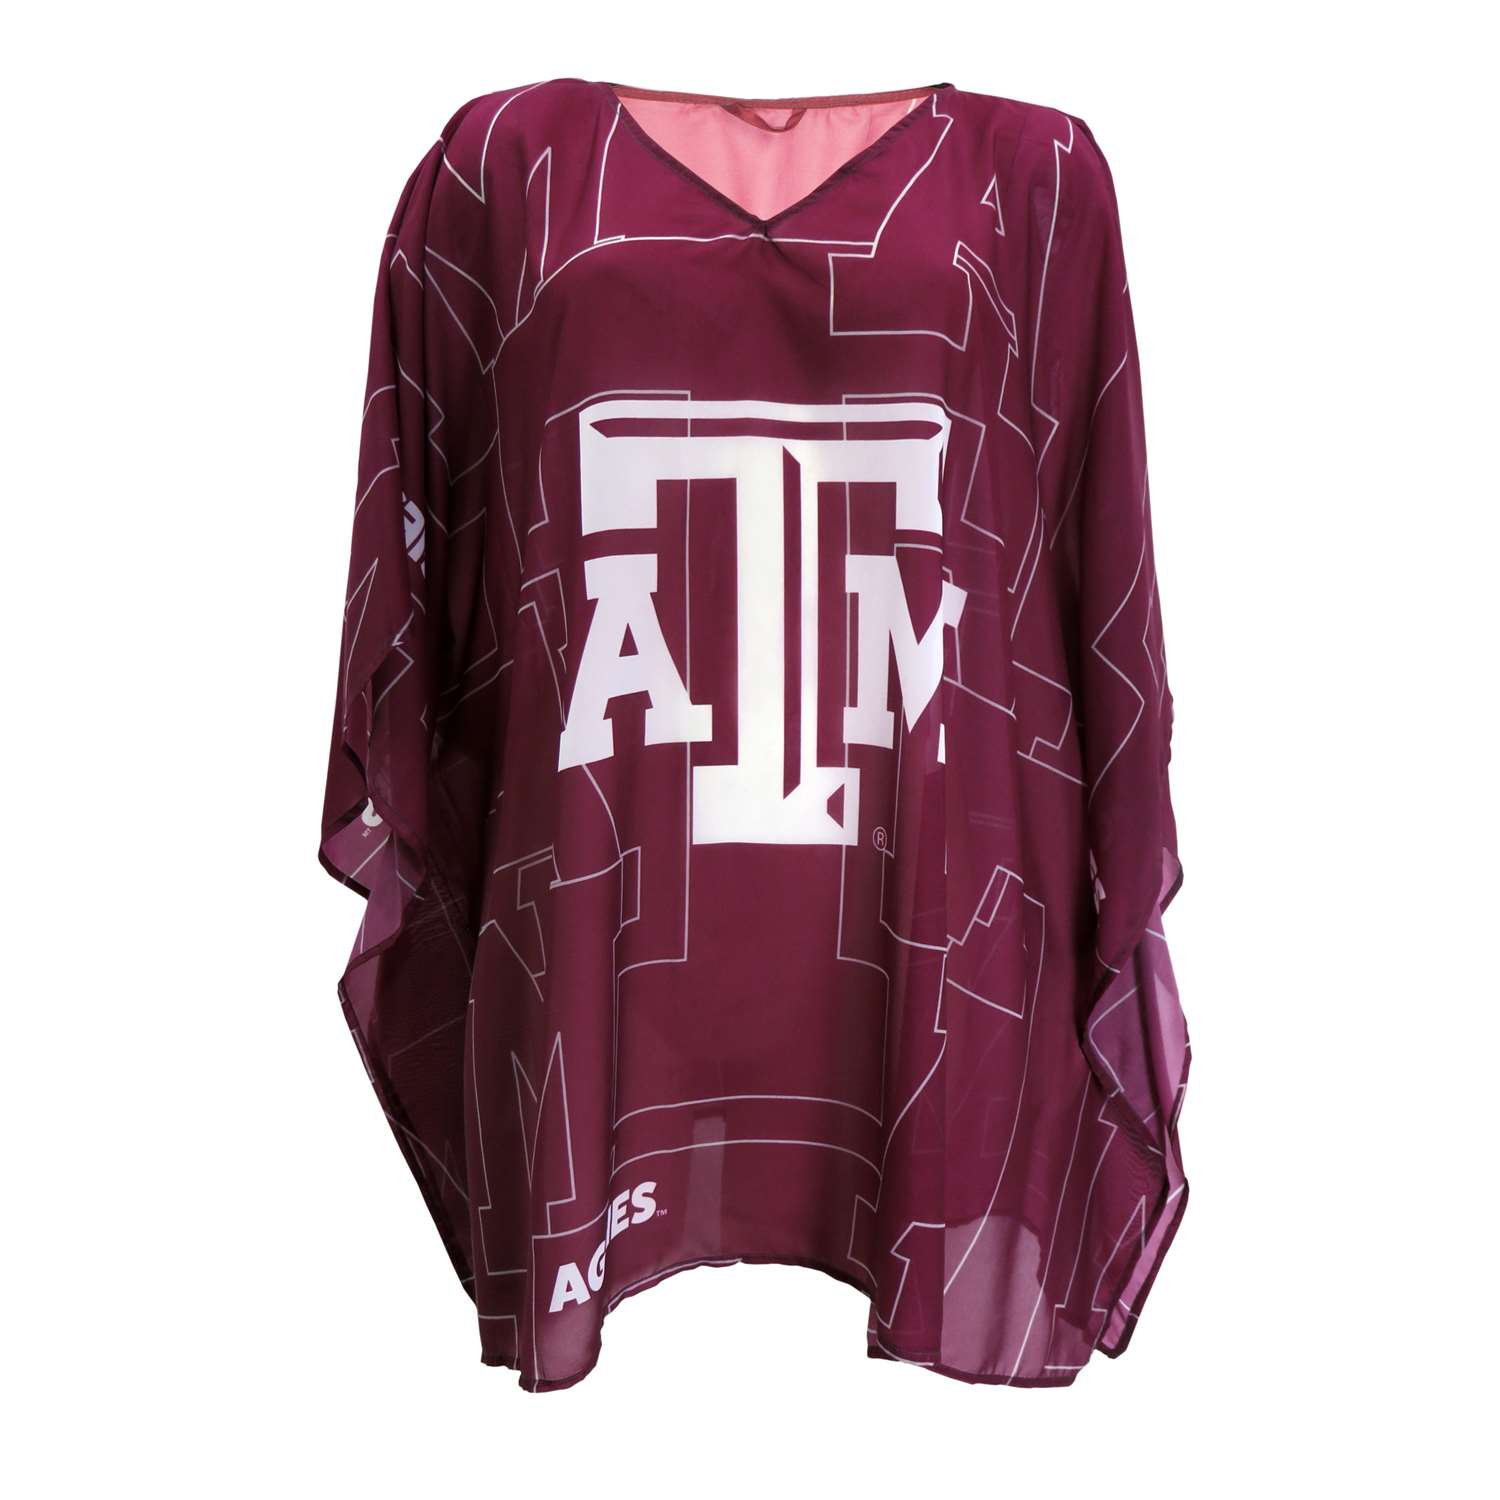 Texas A & M University Caftan Trace - 100627-txam-trace - Ncaa College Ohio University Zanesville Ohio Tracers Bath 100627-TXAM-TRACE